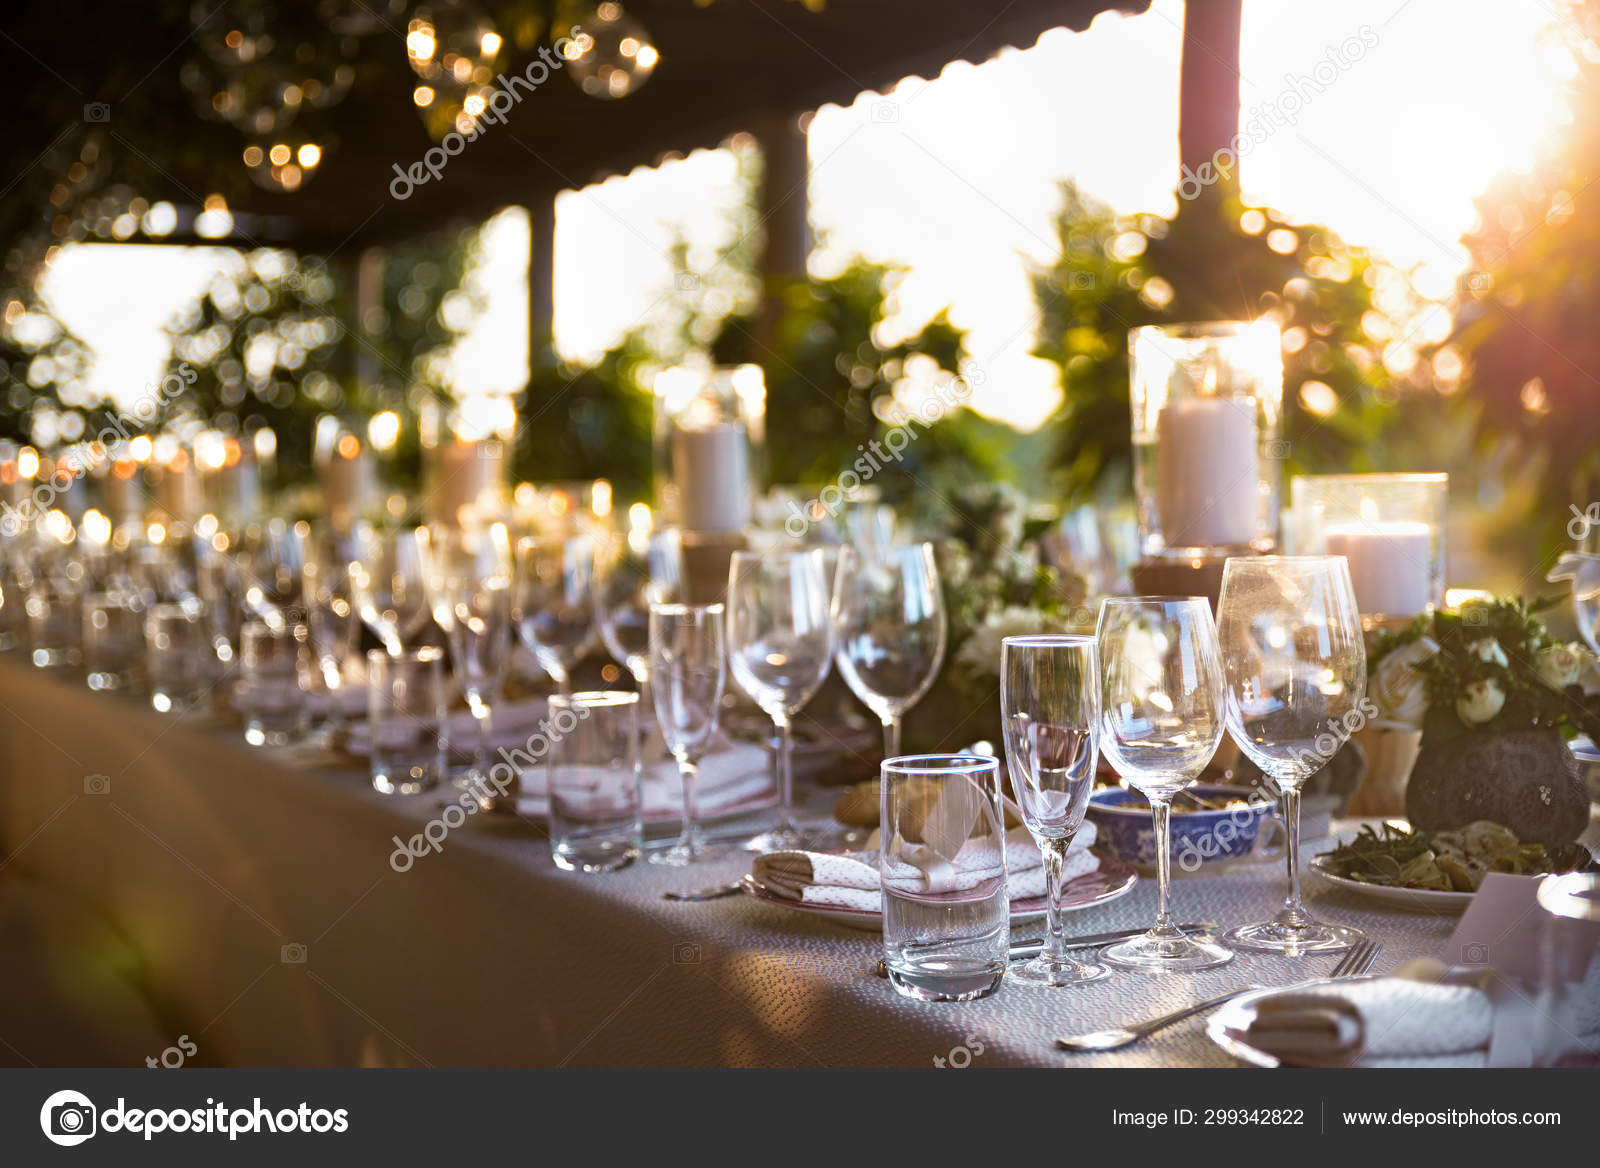 Outdoor Wedding Celebration At A Restaurant Festive Table Setting Catering Wedding In Rustic Style In Summer Beautiful Small Bouquets On A Table Stock Photo C Izik Md 299342822